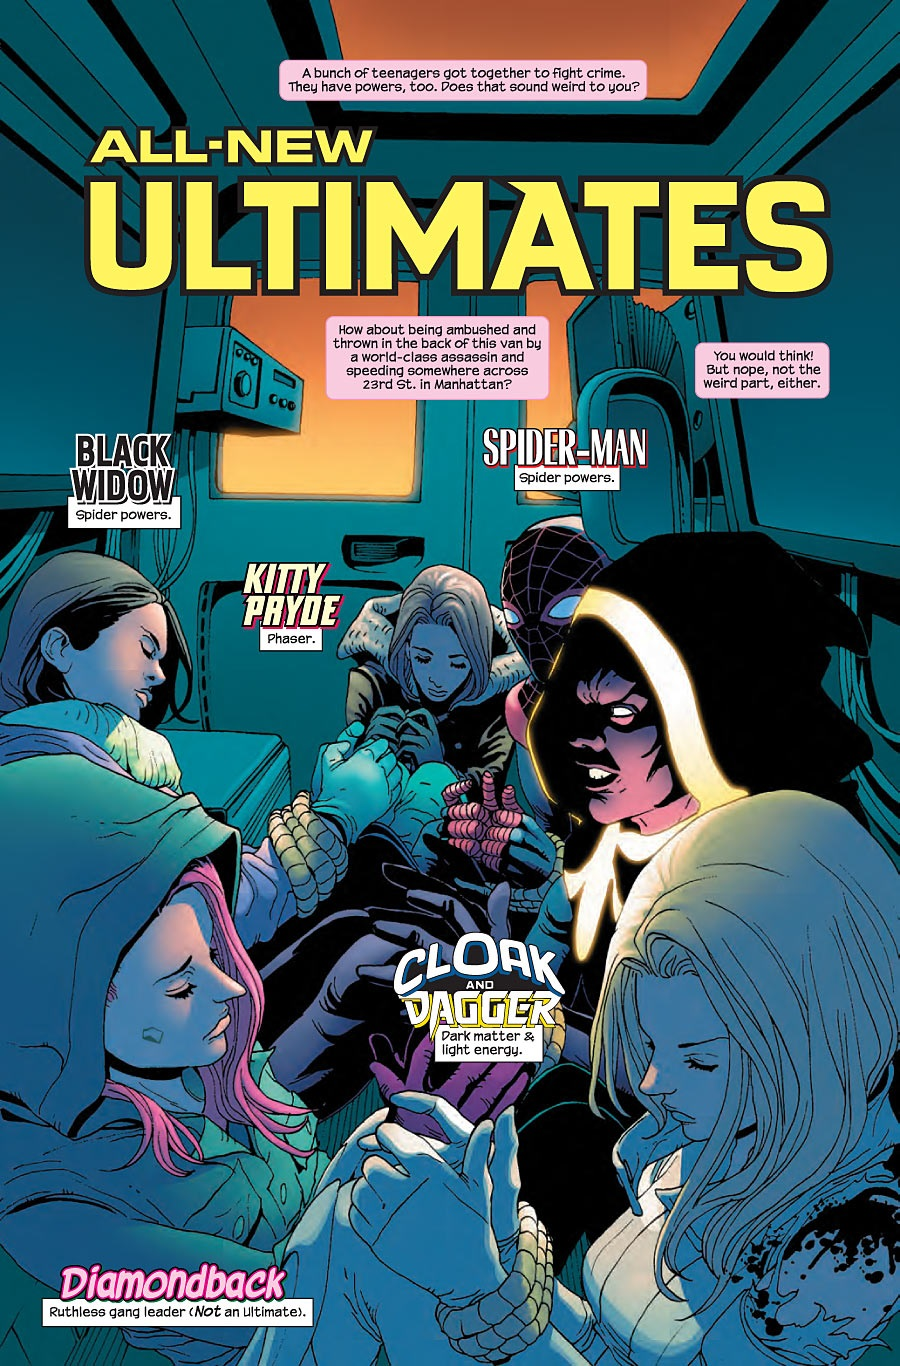 All-New Ultimates #11